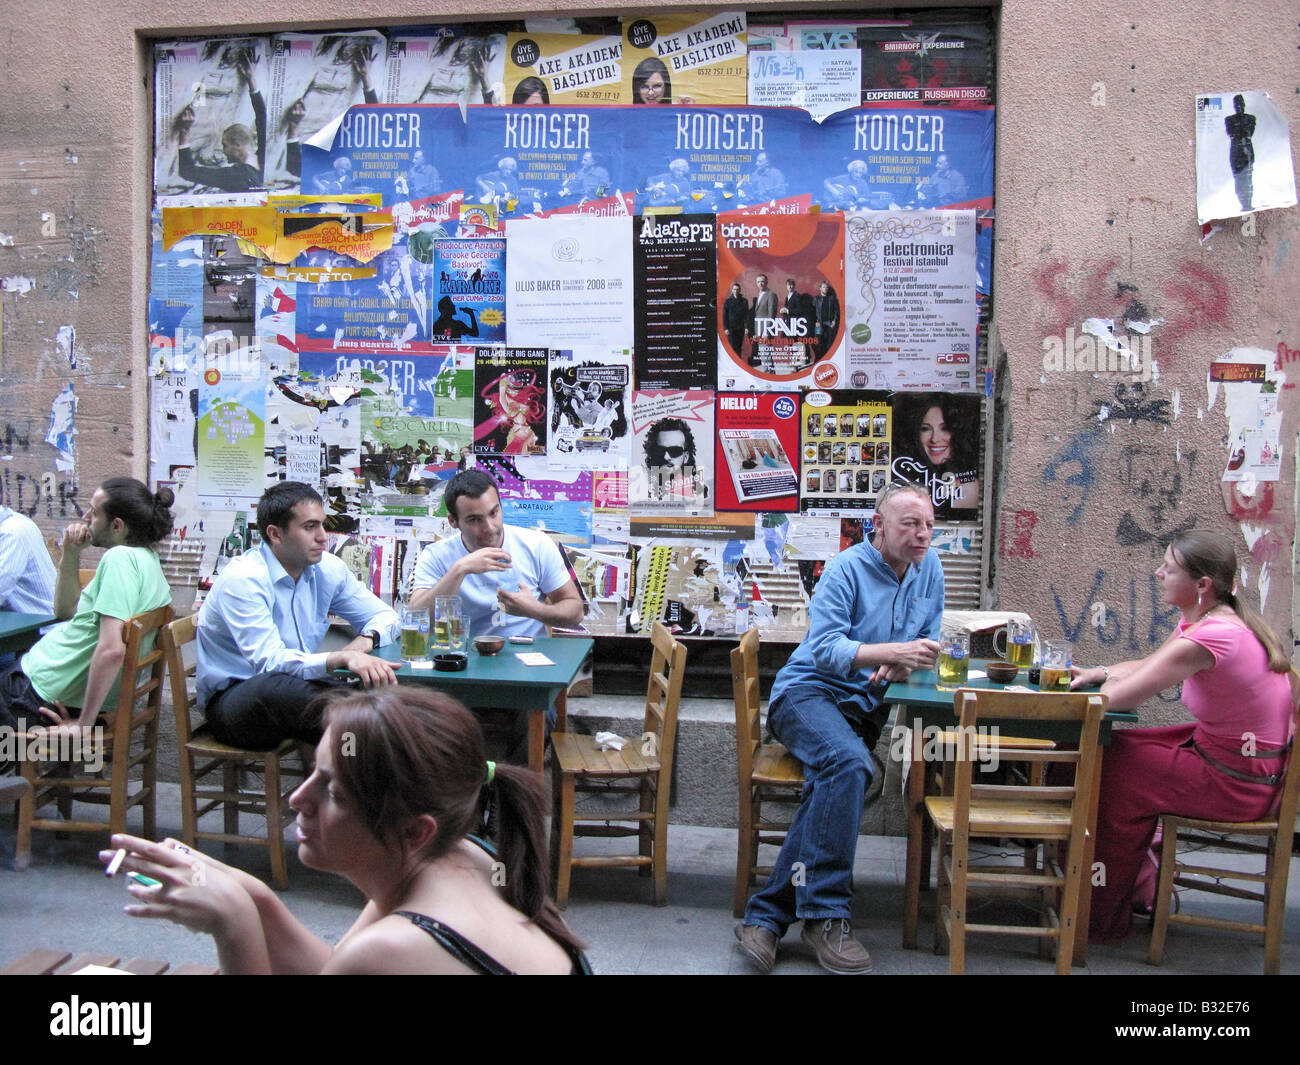 ISTANBUL, TURKEY. A bar on Sofyali Sokak in Beyoglu district. 2008. - Stock Image